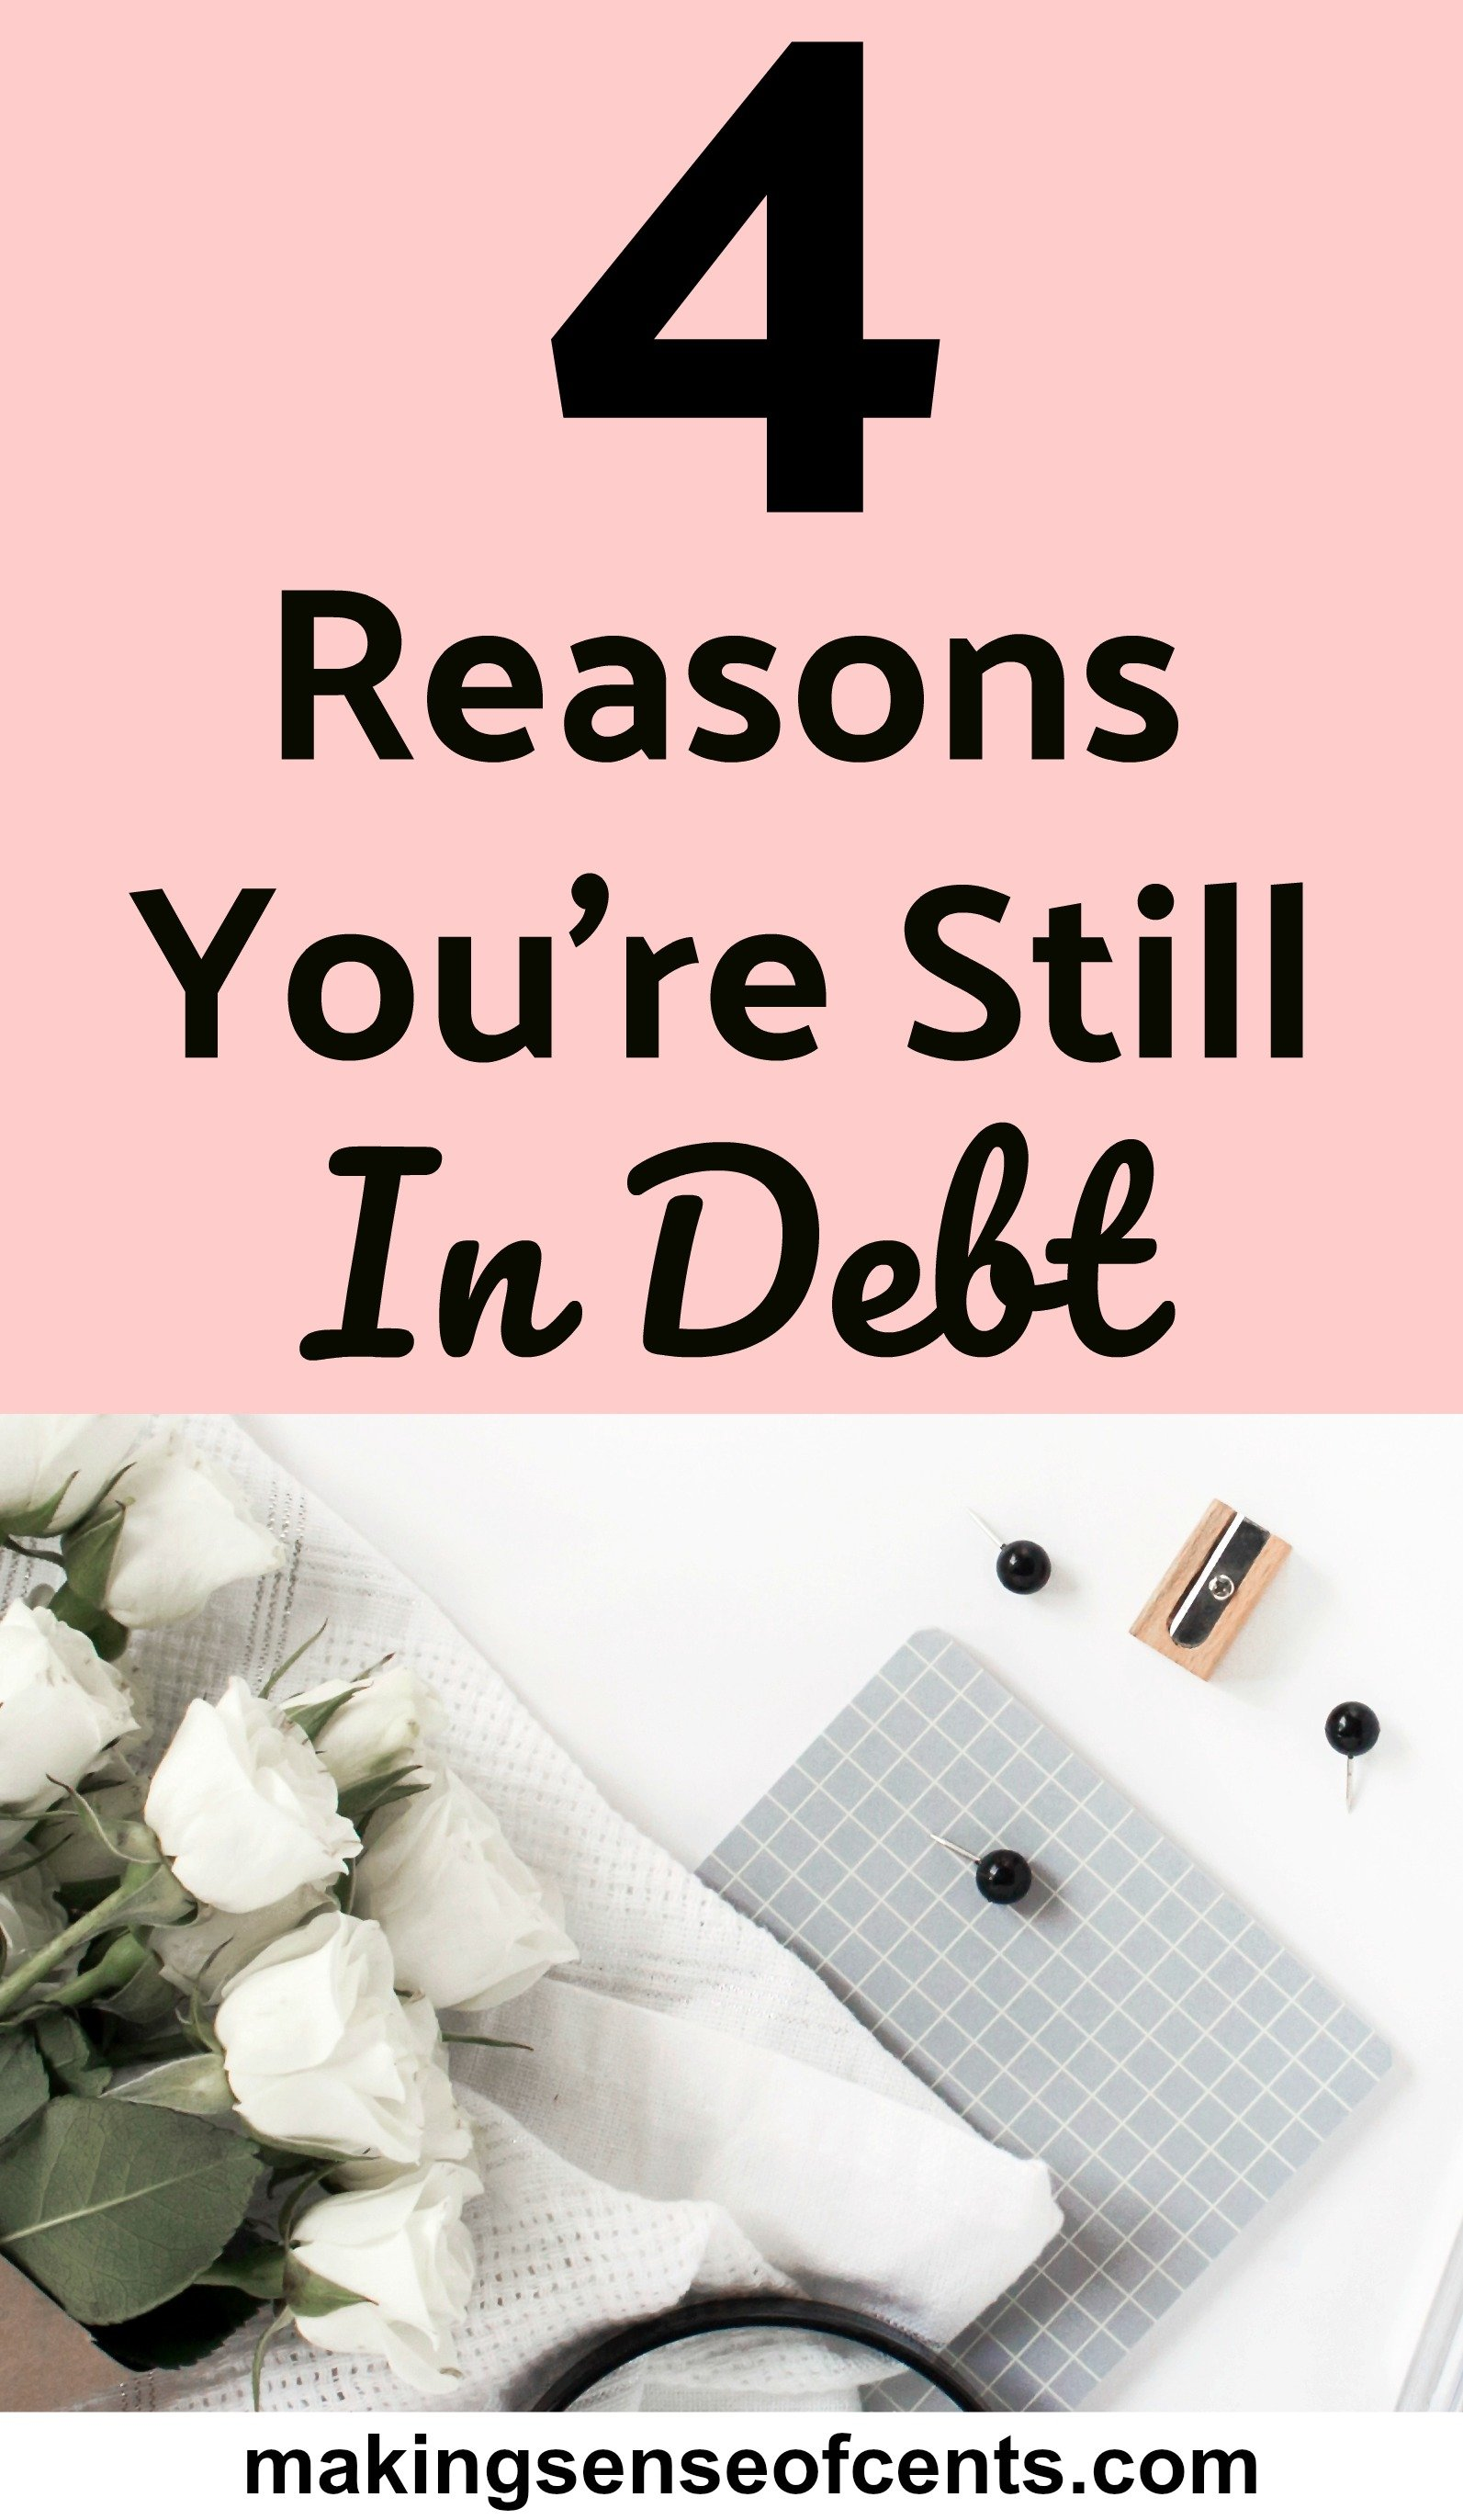 Reasons You're Still In Debt